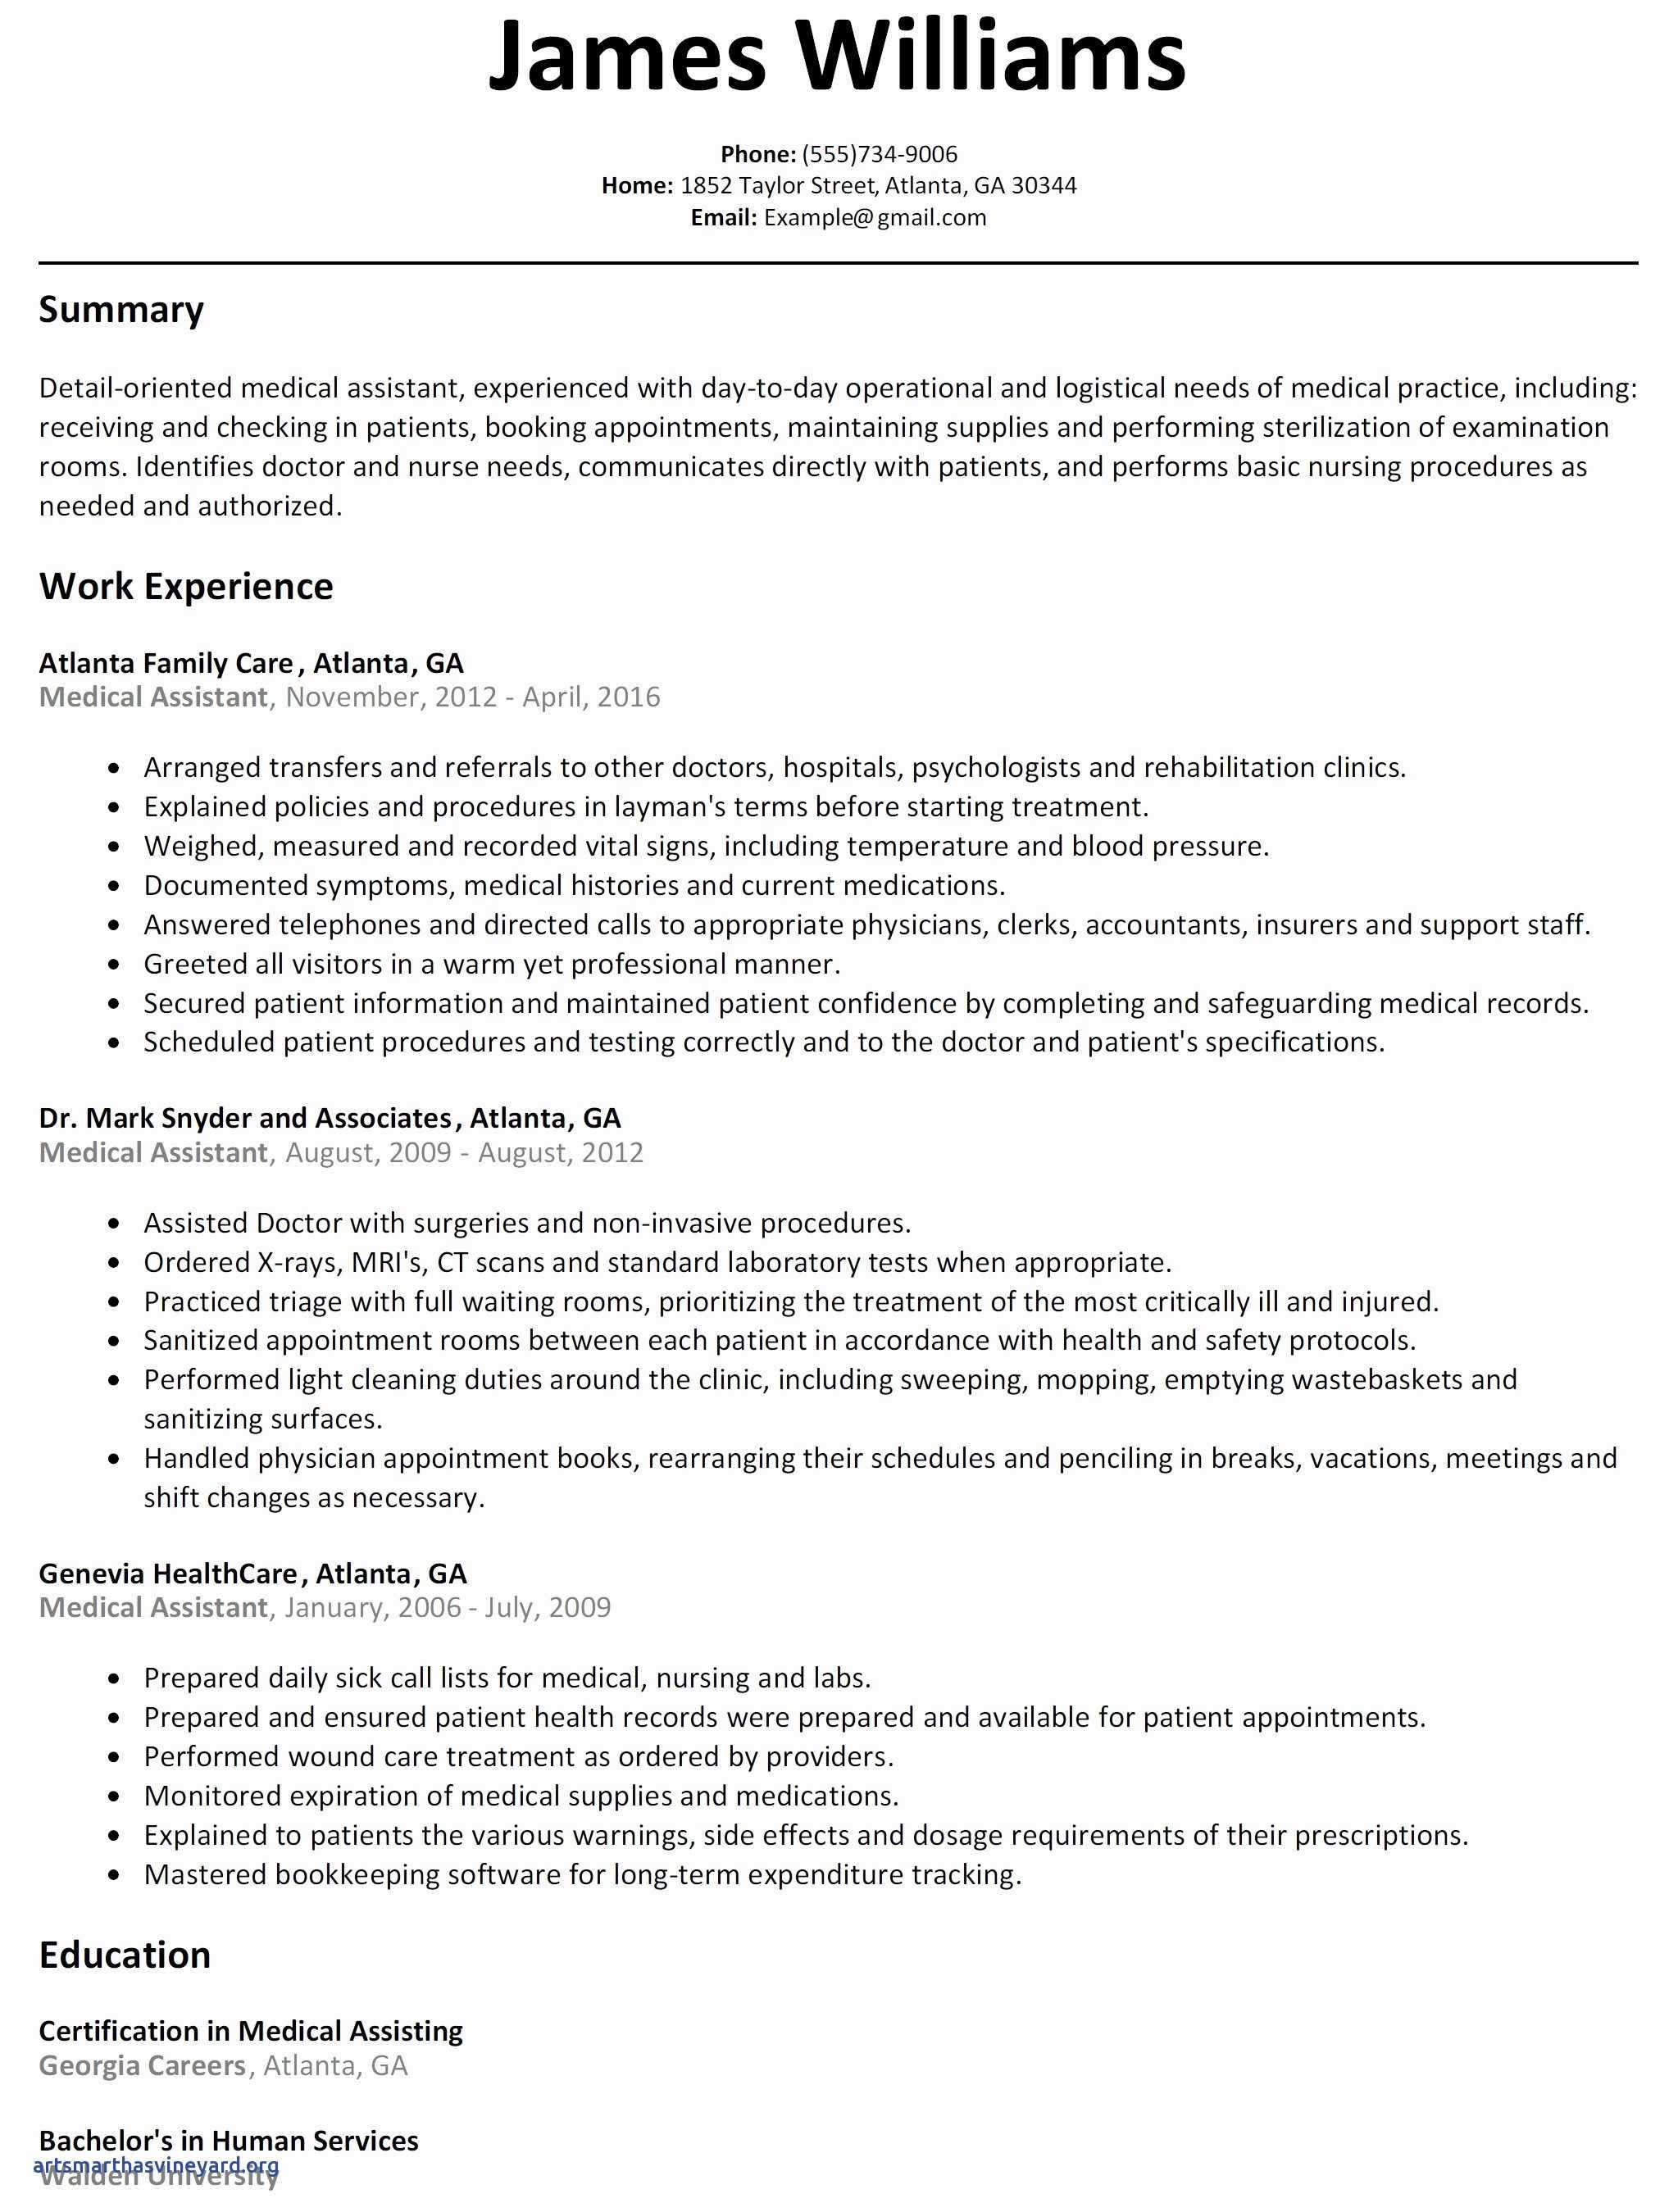 store manager resume template example-Unique Retail Resume Sample Awesome Resume Template Free Word New Od 9-n